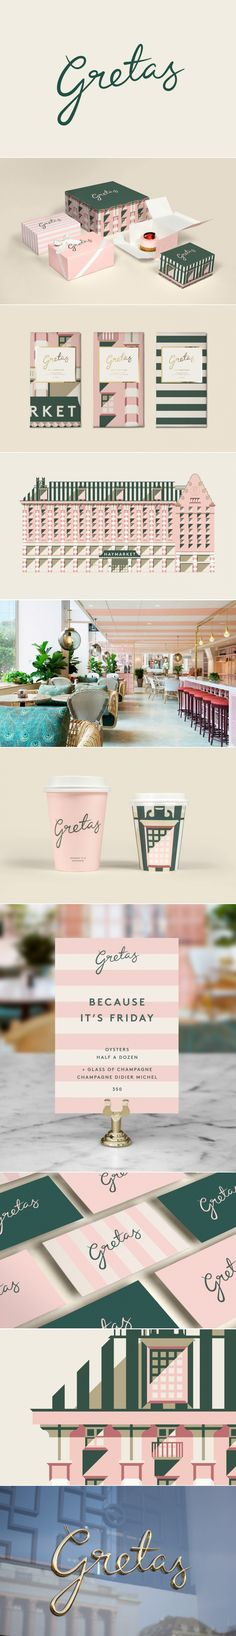 Soft pink hues and forest greens help to give this branding identity a fun, distinctive, old-world feel somewhat reminiscent of both The Beverly Hills Hotel and The Grand Budapest Hotel. The design itself is highly versatile, as we can see from it's ability to be wrapped around a range of products, adeptly portraying the historical building in which Gretas is set in. Gretas by 25AH